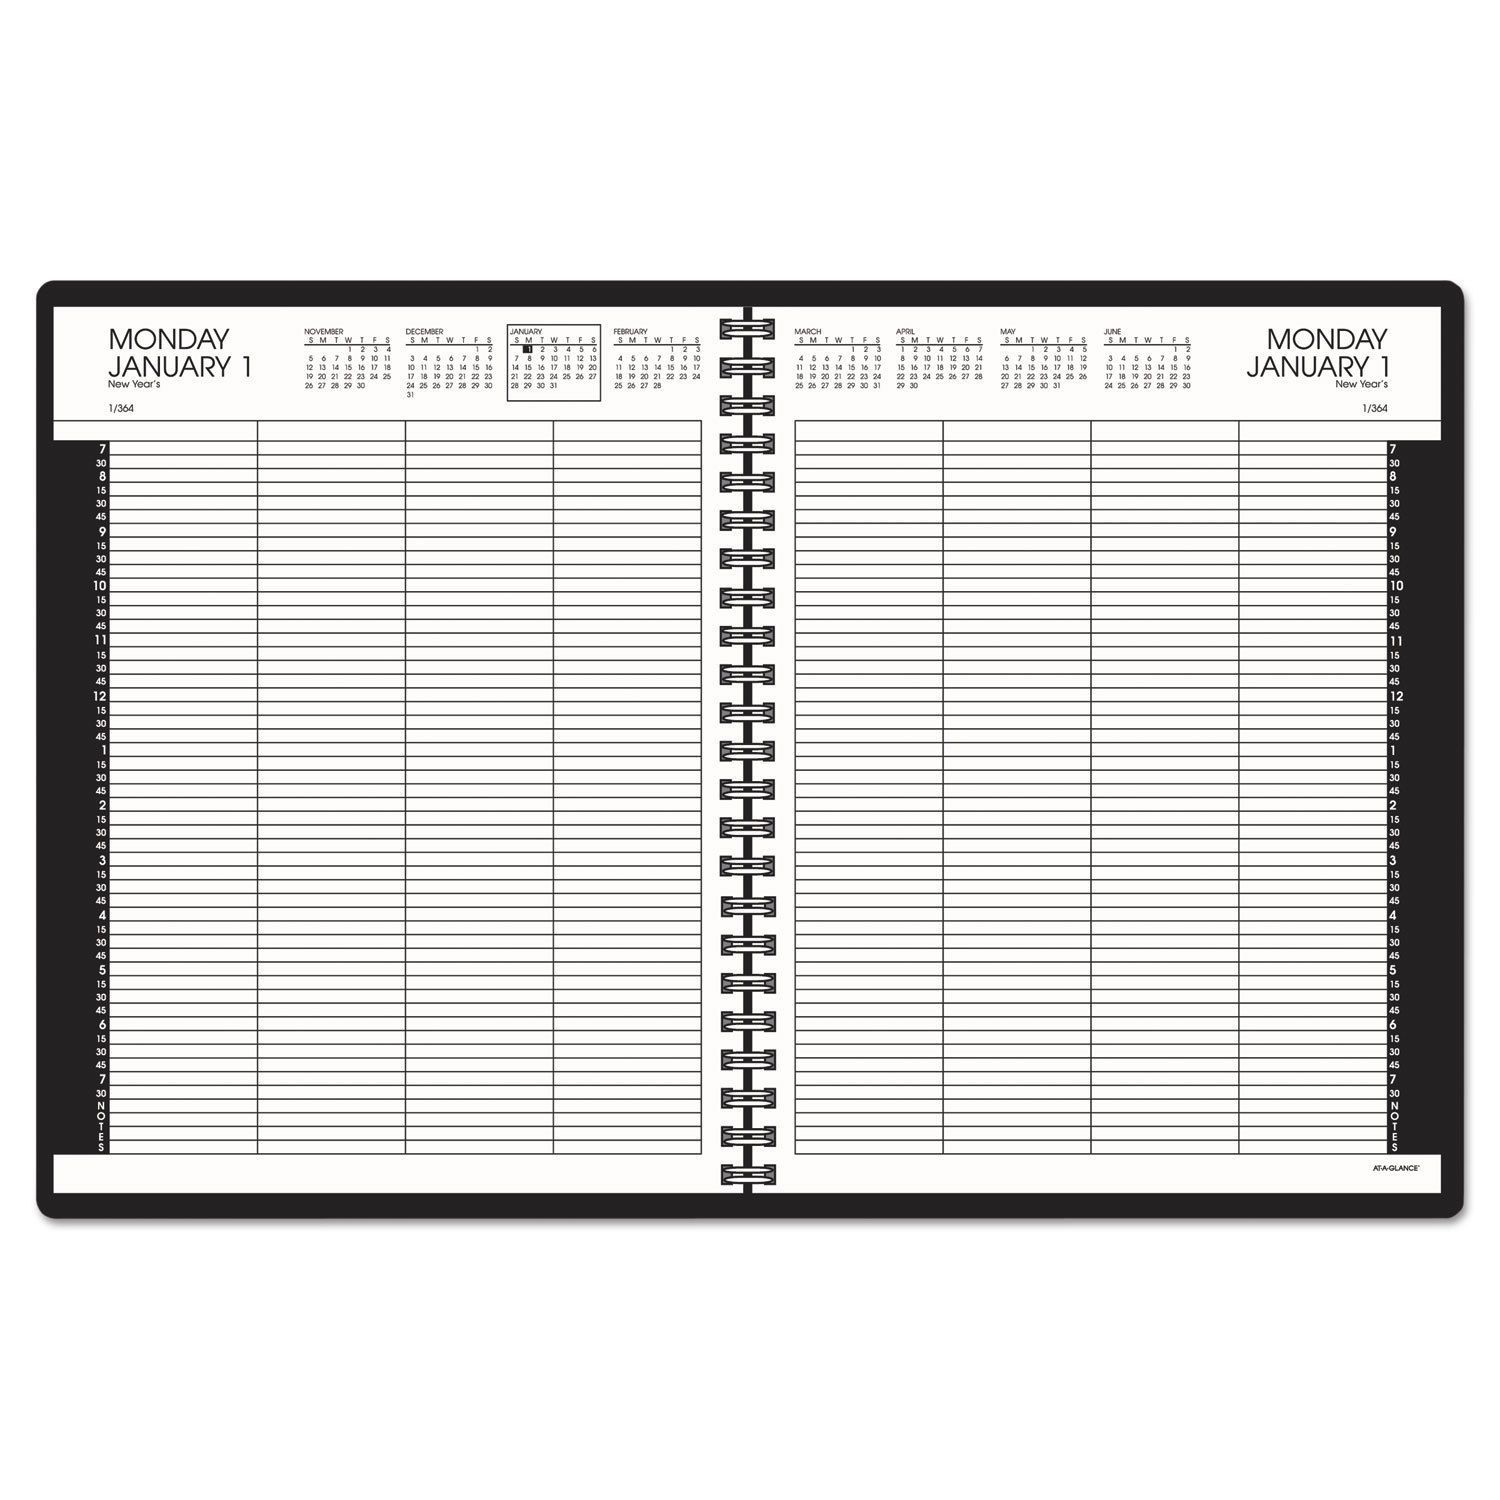 At-A-Glance Eight-Person Group Daily Appointment Book 8 1/2 x 11 White 2017